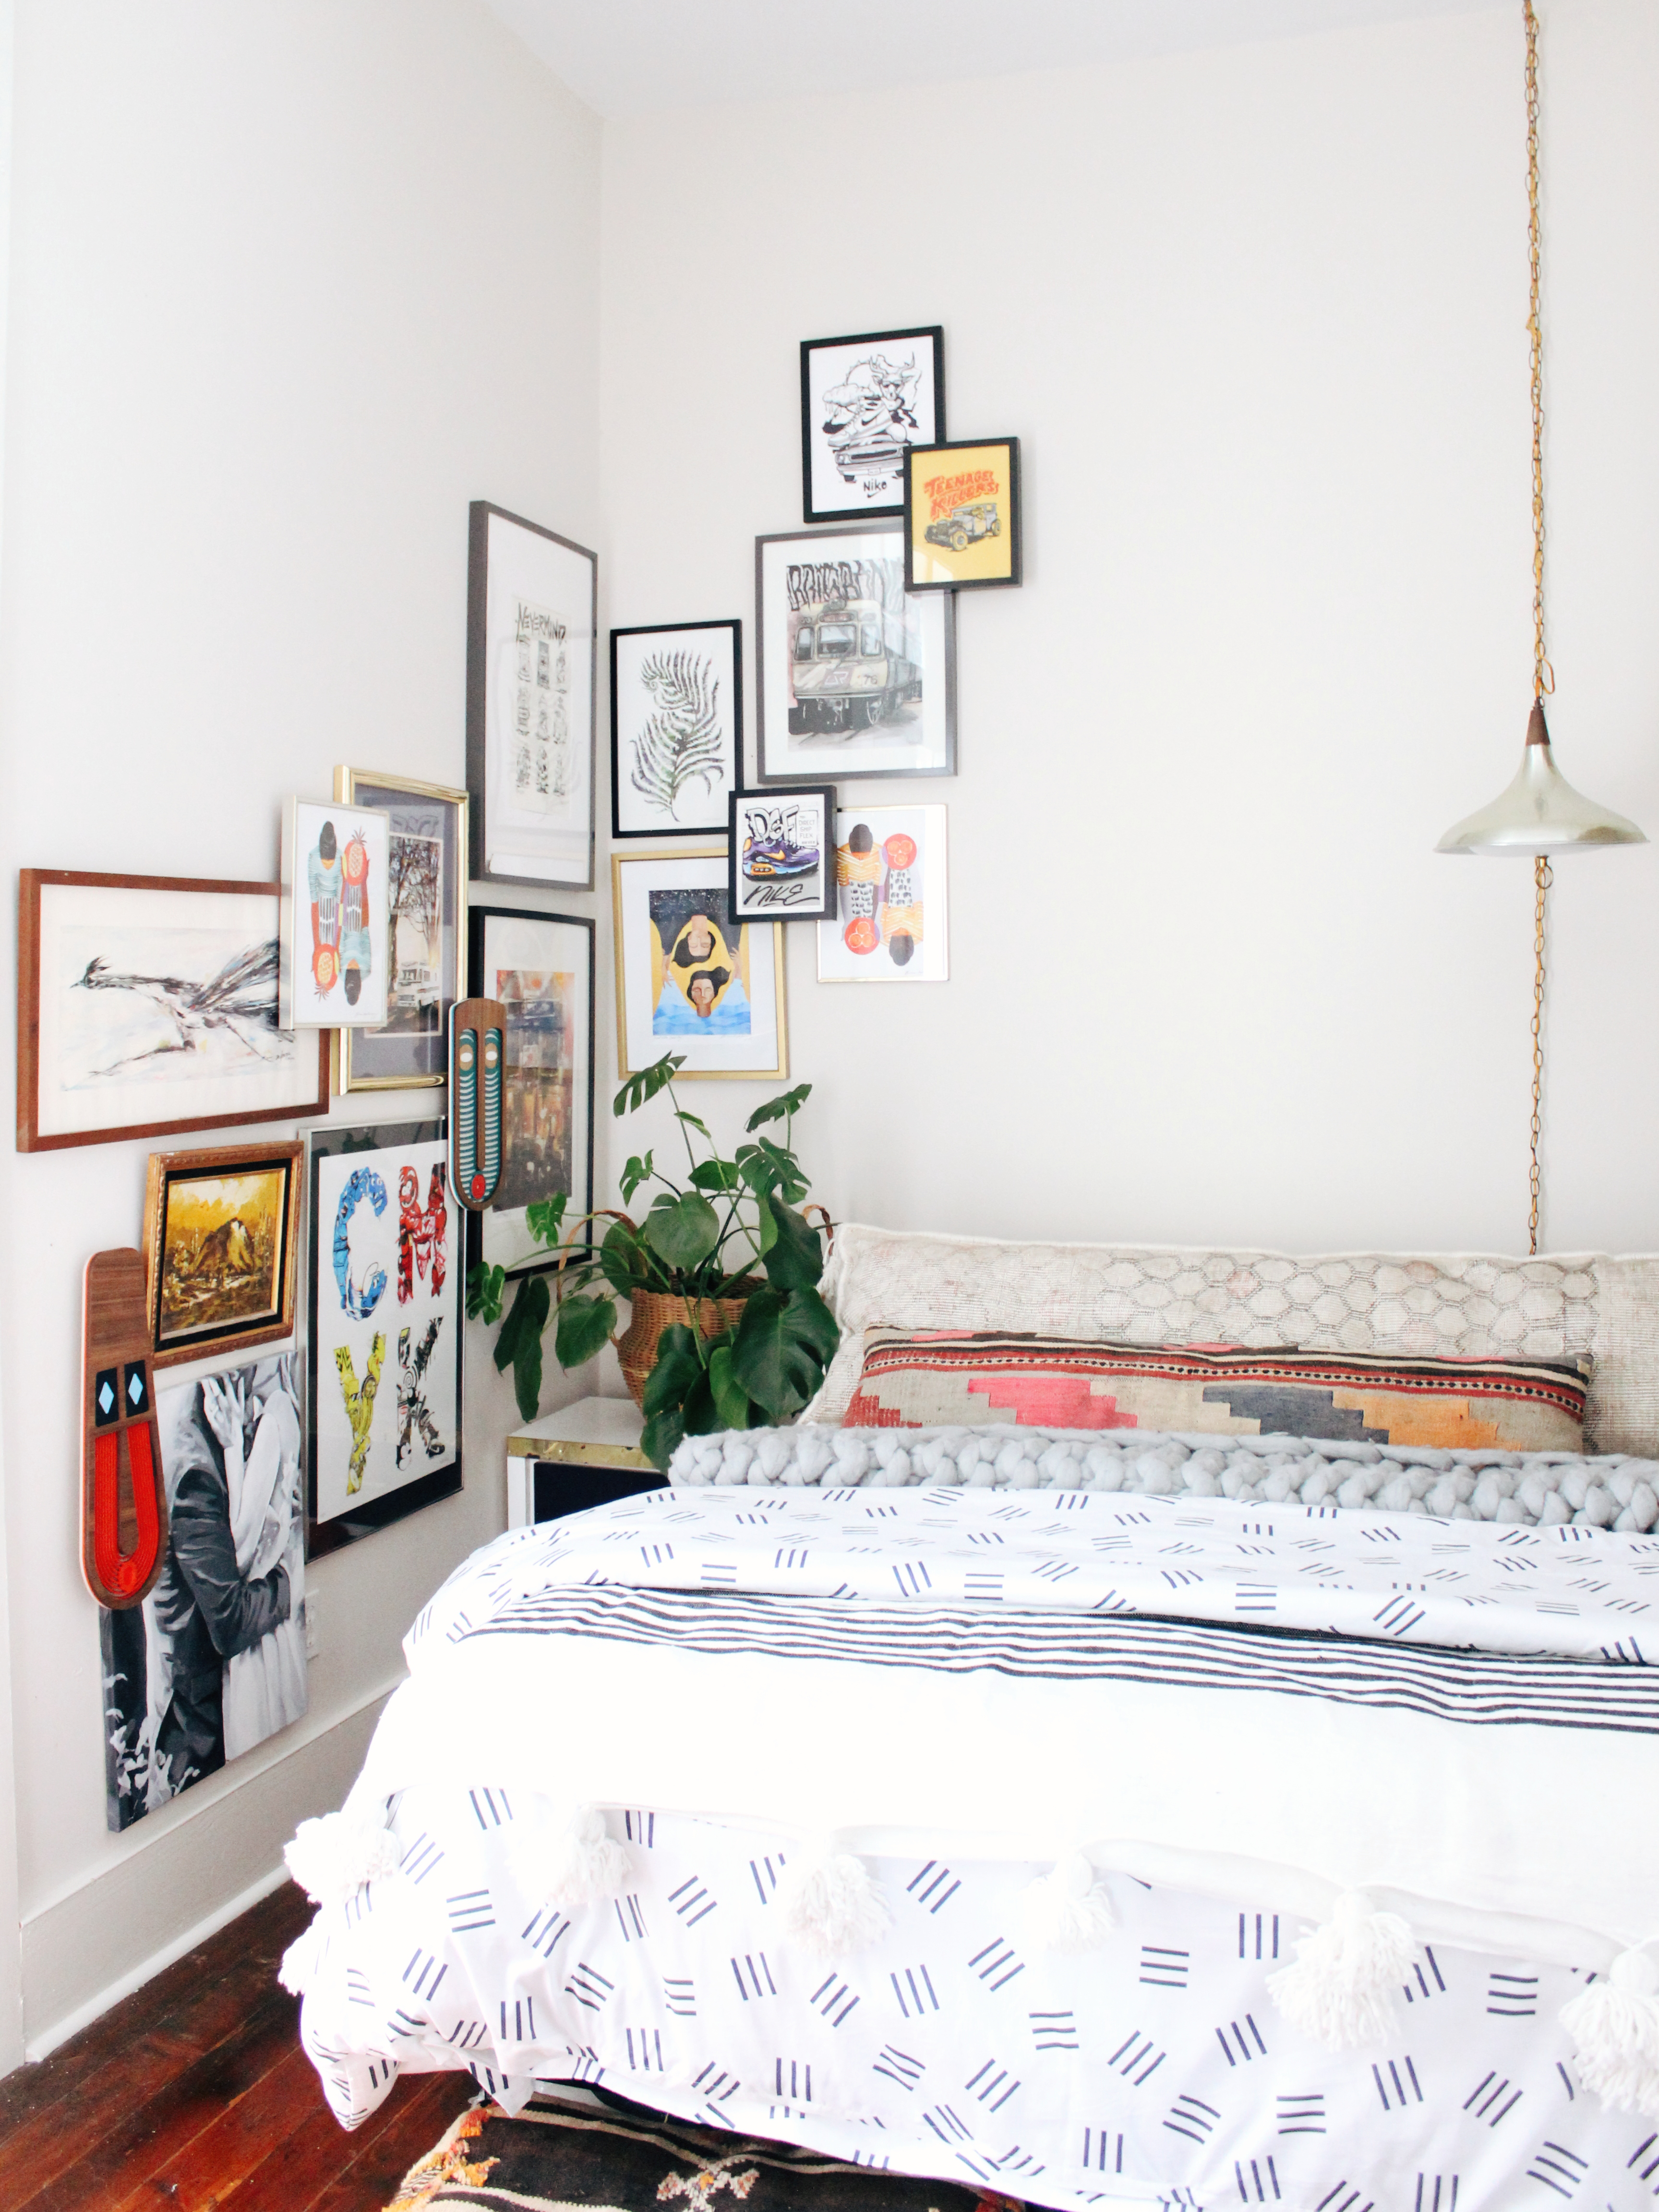 12 Stylish Master Bedroom Decorating Ideas  Apartment Therapy